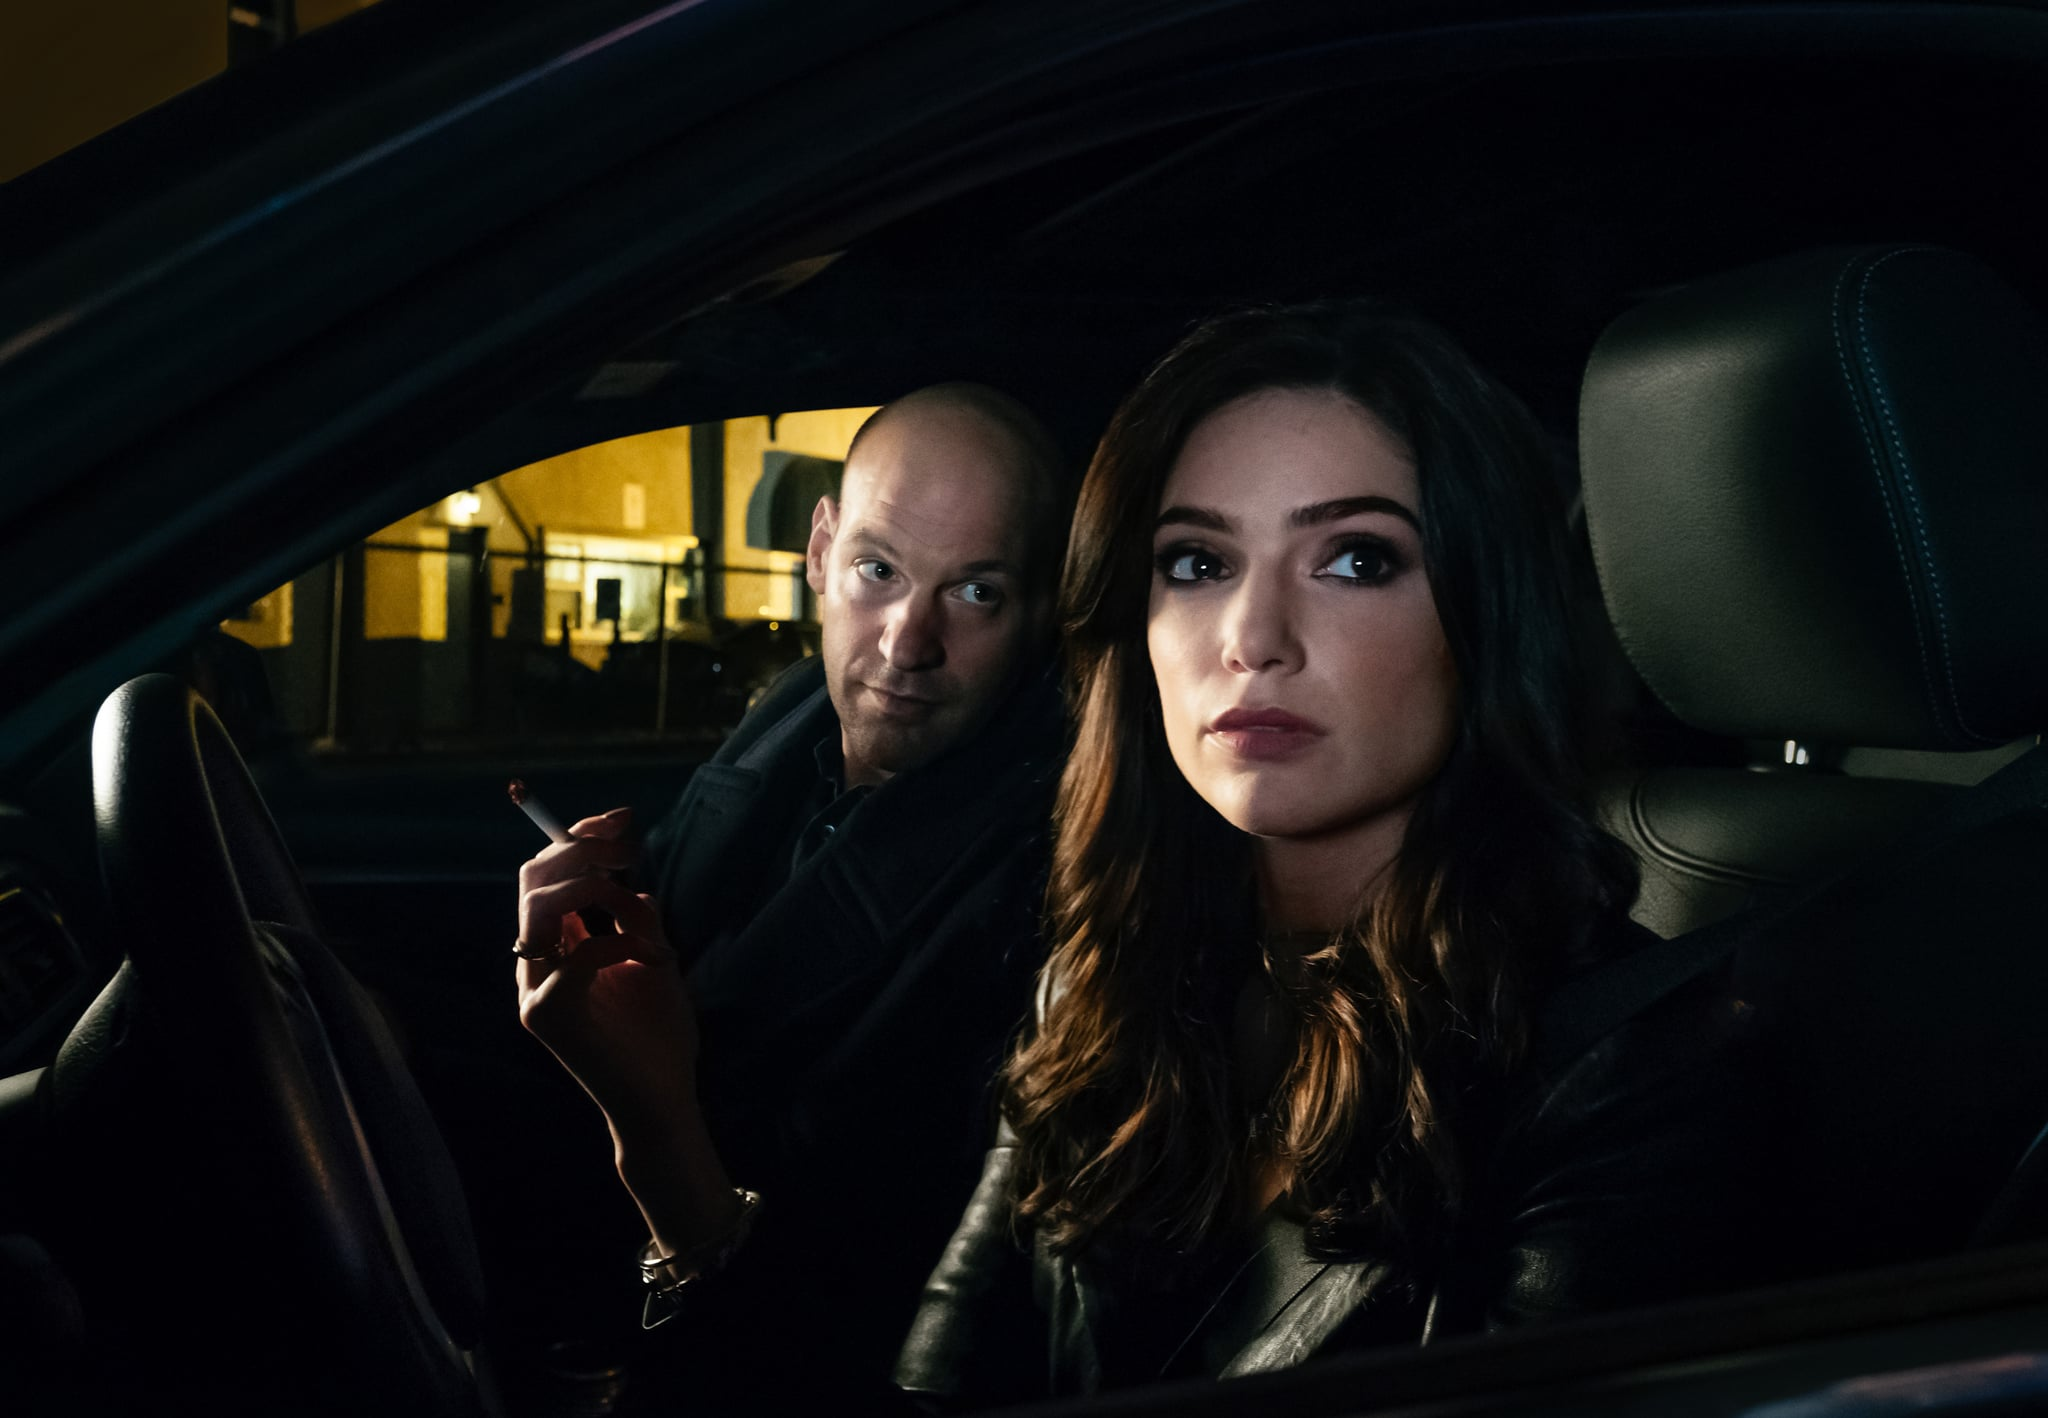 When Will The Romanoffs Debut? Here's When to Tune In